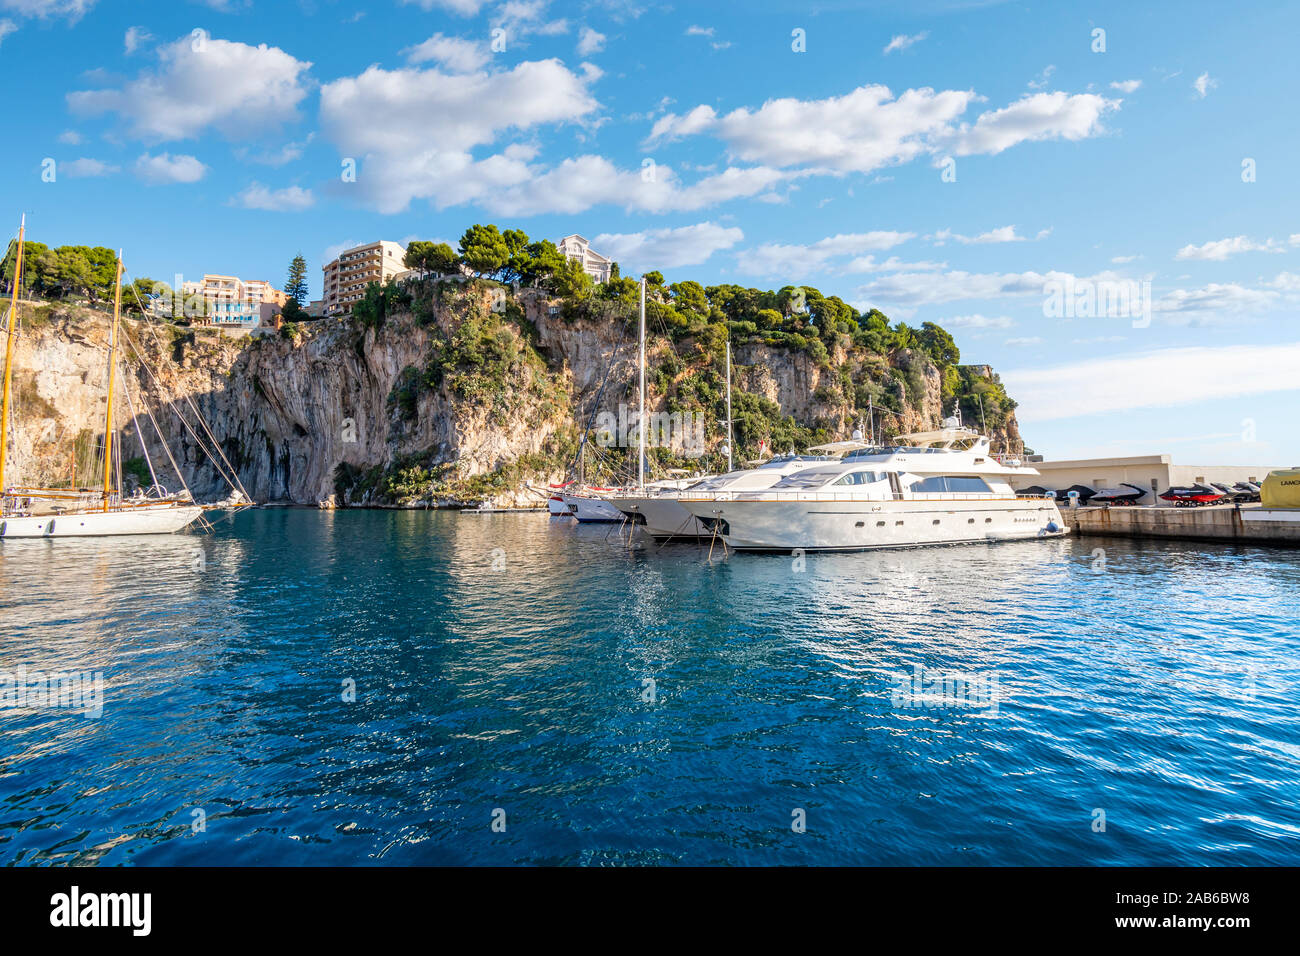 Sailboats and yachts moored in the Fontvieille Port along the Riviera in Monaco. Stock Photo